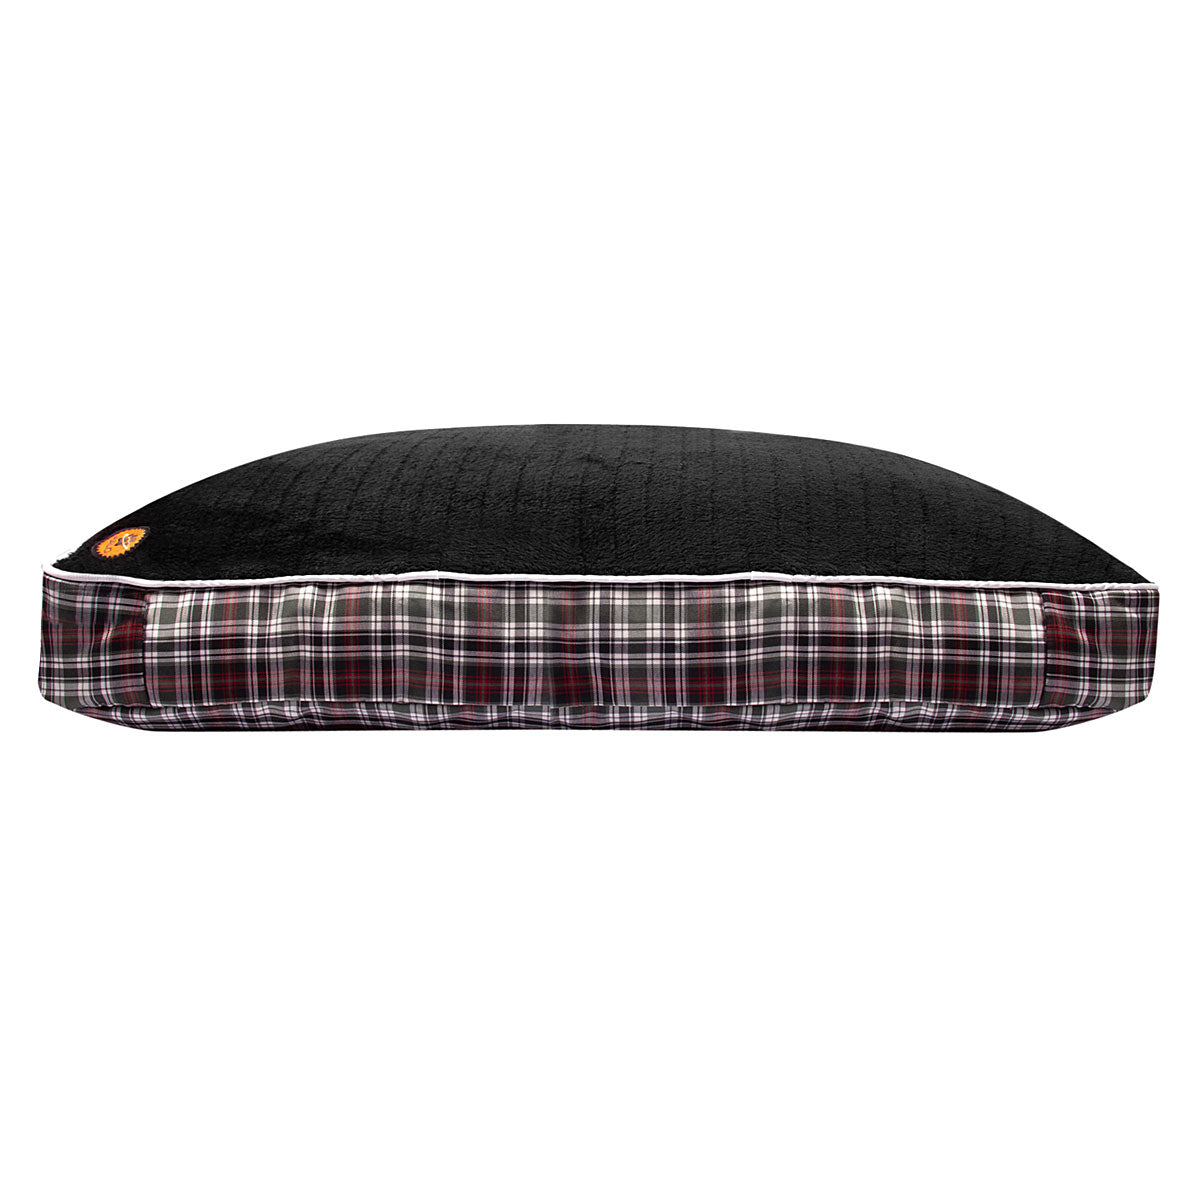 Duck Green Plaid Rectangular Dog Bed - Halo - Breeches.com